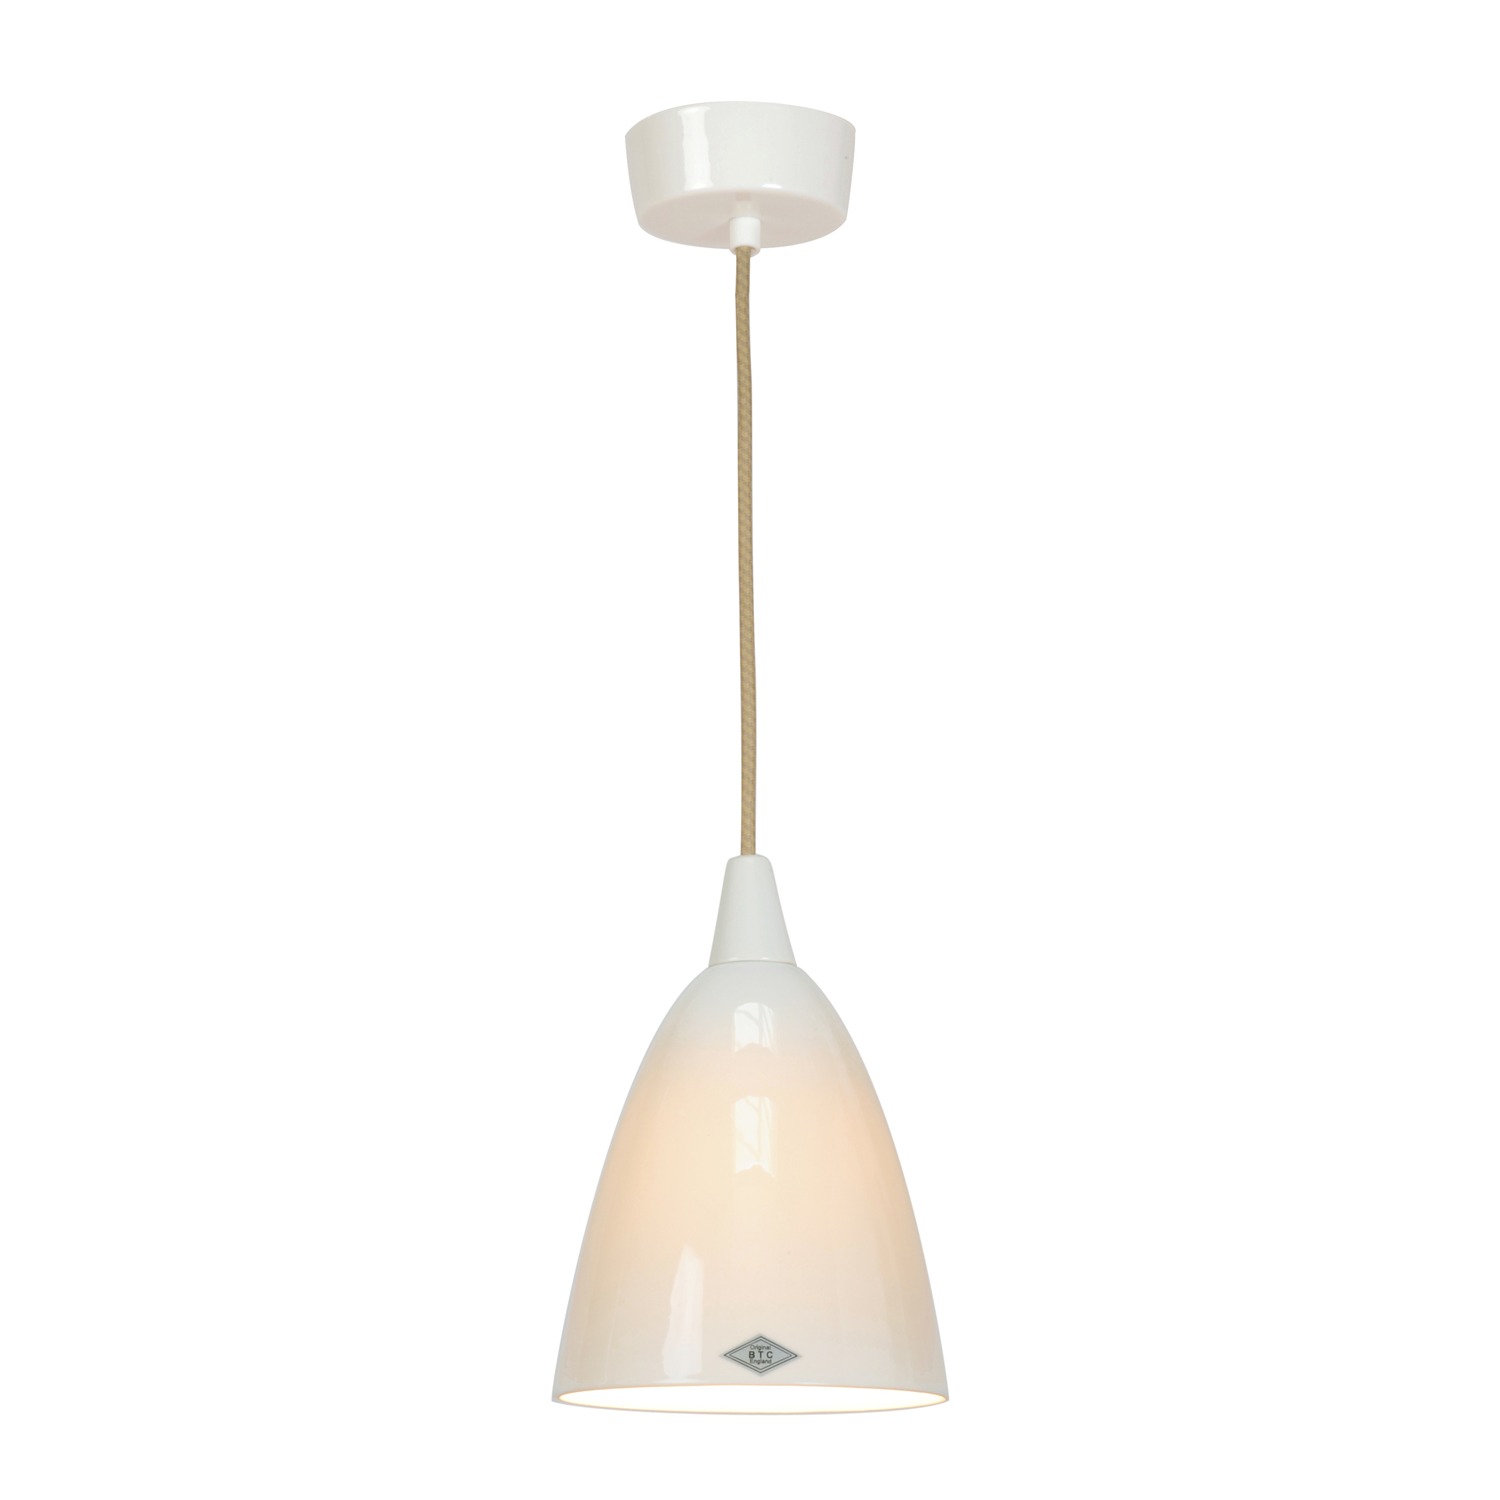 Hector Size 2 Pendant Light, Natural